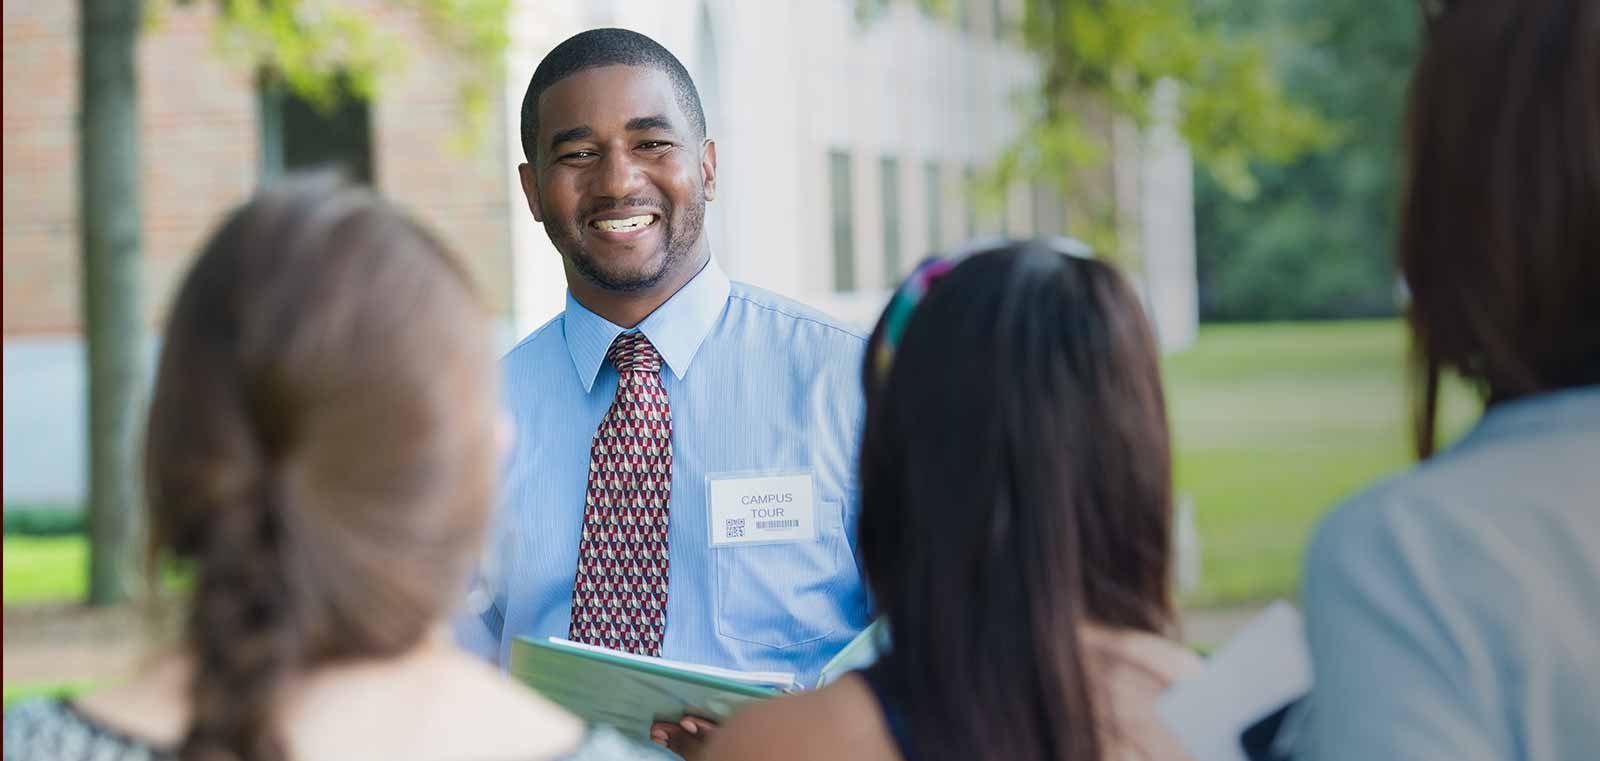 Schedule College Rep Visits with Ease